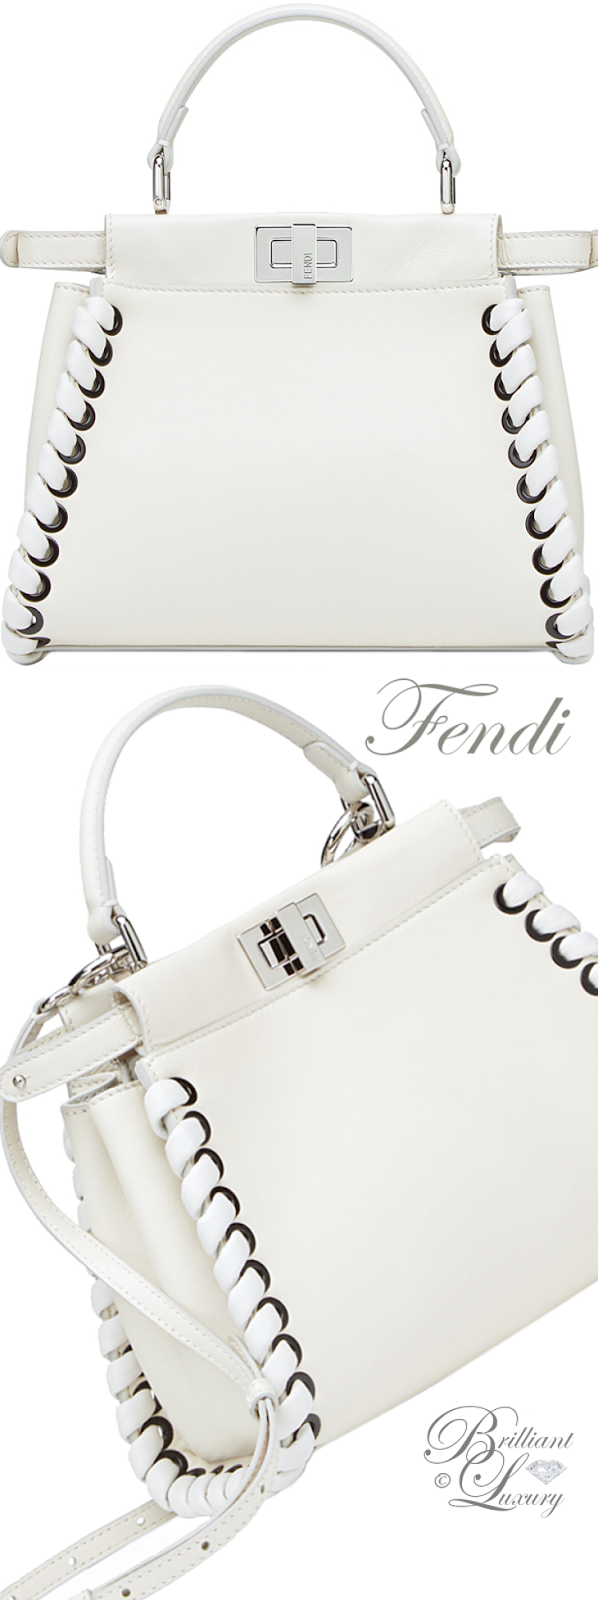 Brilliant Luxury ♦ Fendi Mini Peekaboo Bag